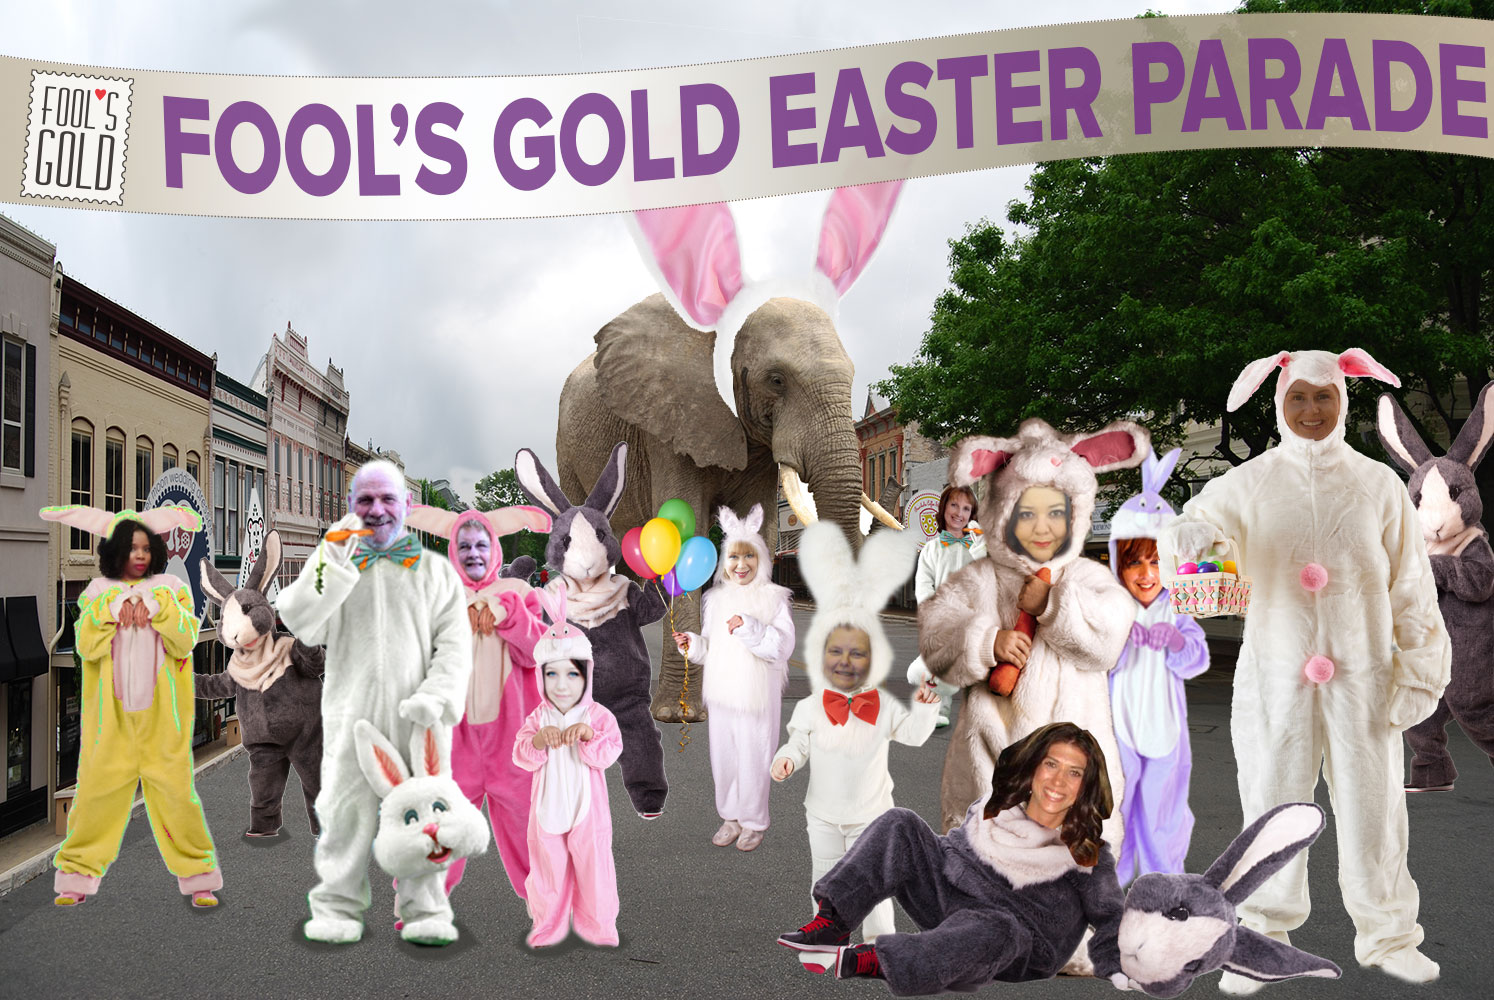 Fool's Gold Easter Bunny Parade